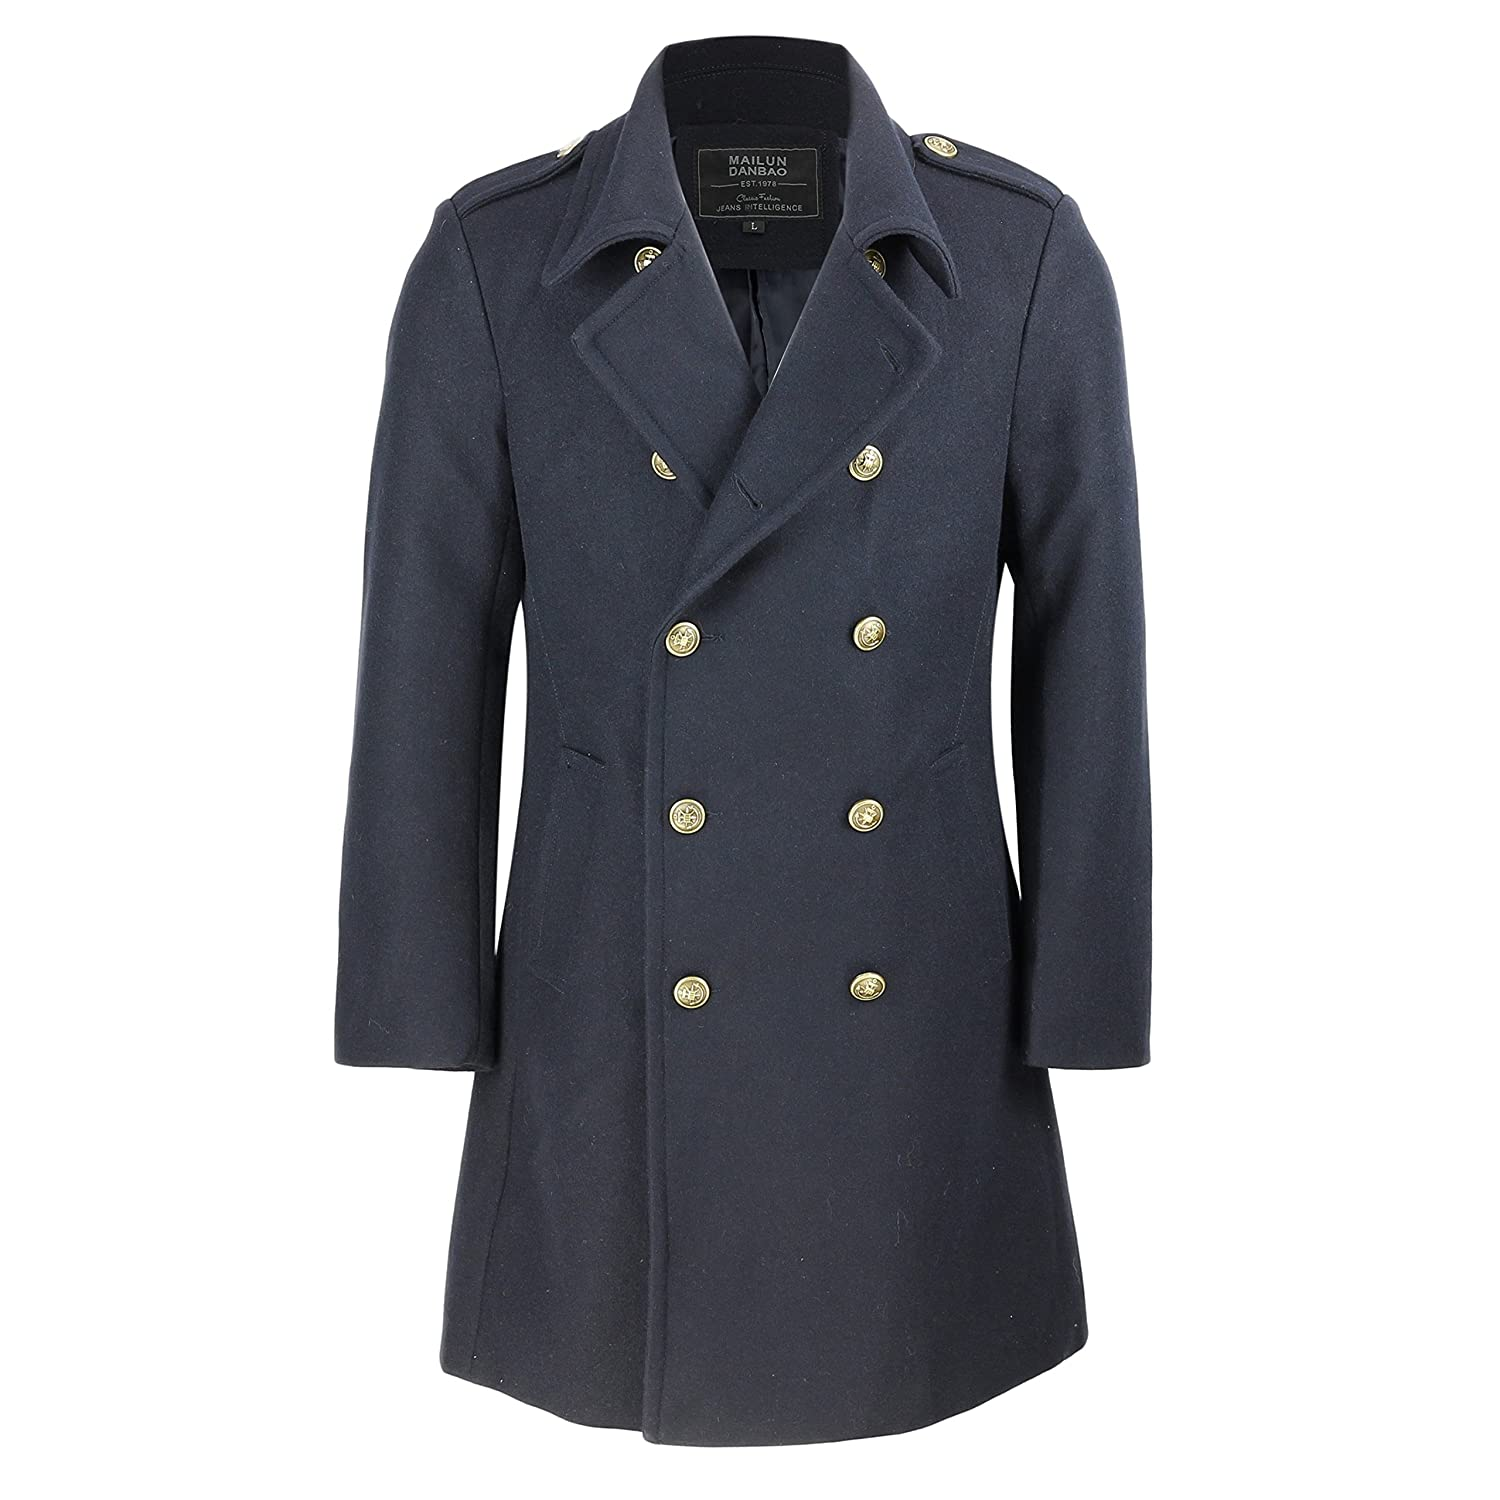 Steampunk Men's Coats Mens Vintage Military Style Wool Mix Double Breasted Jacket Slim Fit Long Winter Overcoat in Black Navy Blue £86.99 AT vintagedancer.com